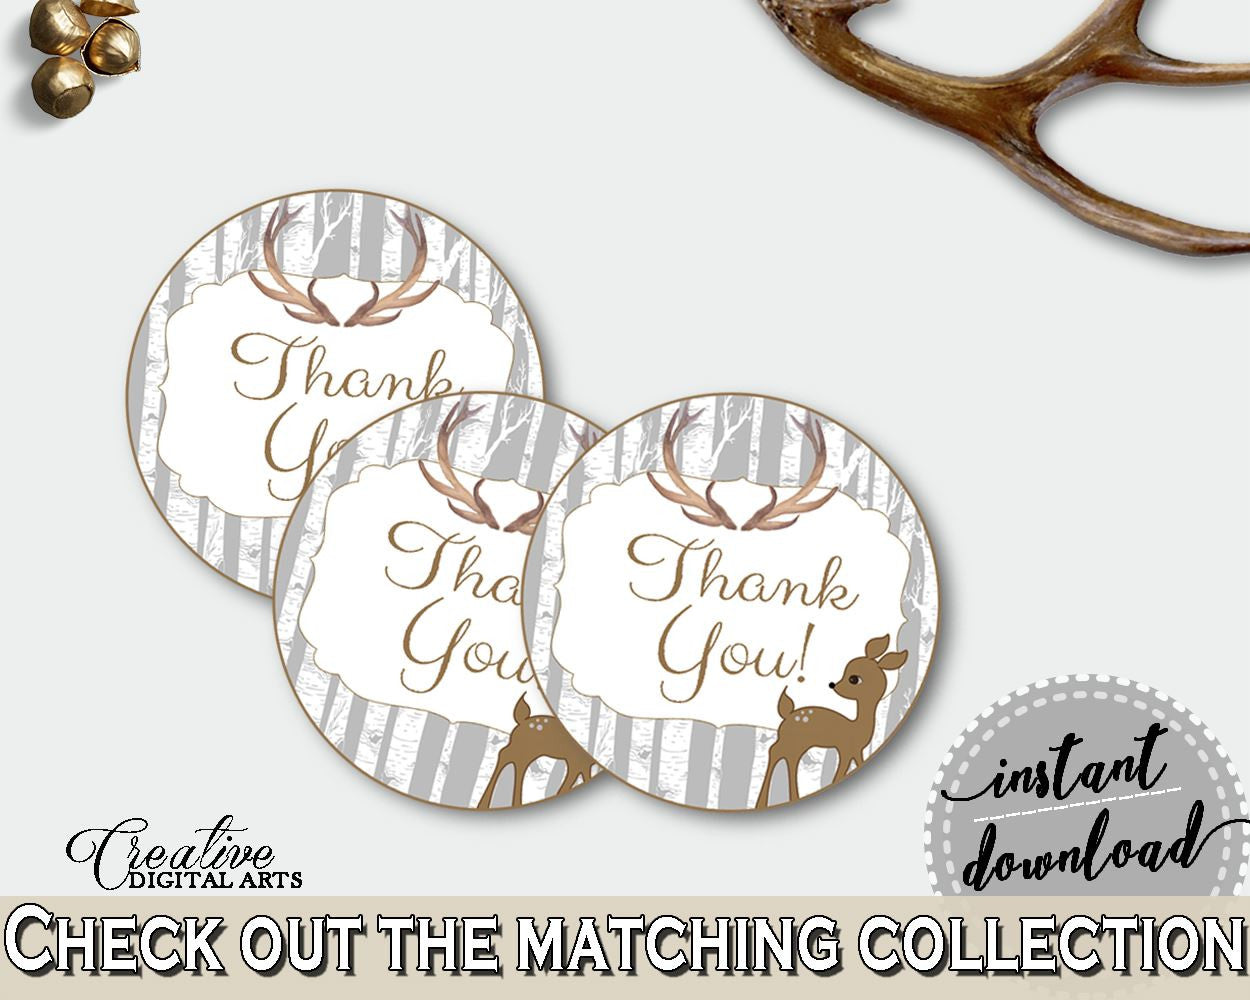 Round Tags Baby Shower Round Tags Deer Baby Shower Round Tags Baby Shower Deer Round Tags Gray Brown party supplies - Z20R3 - Digital Product